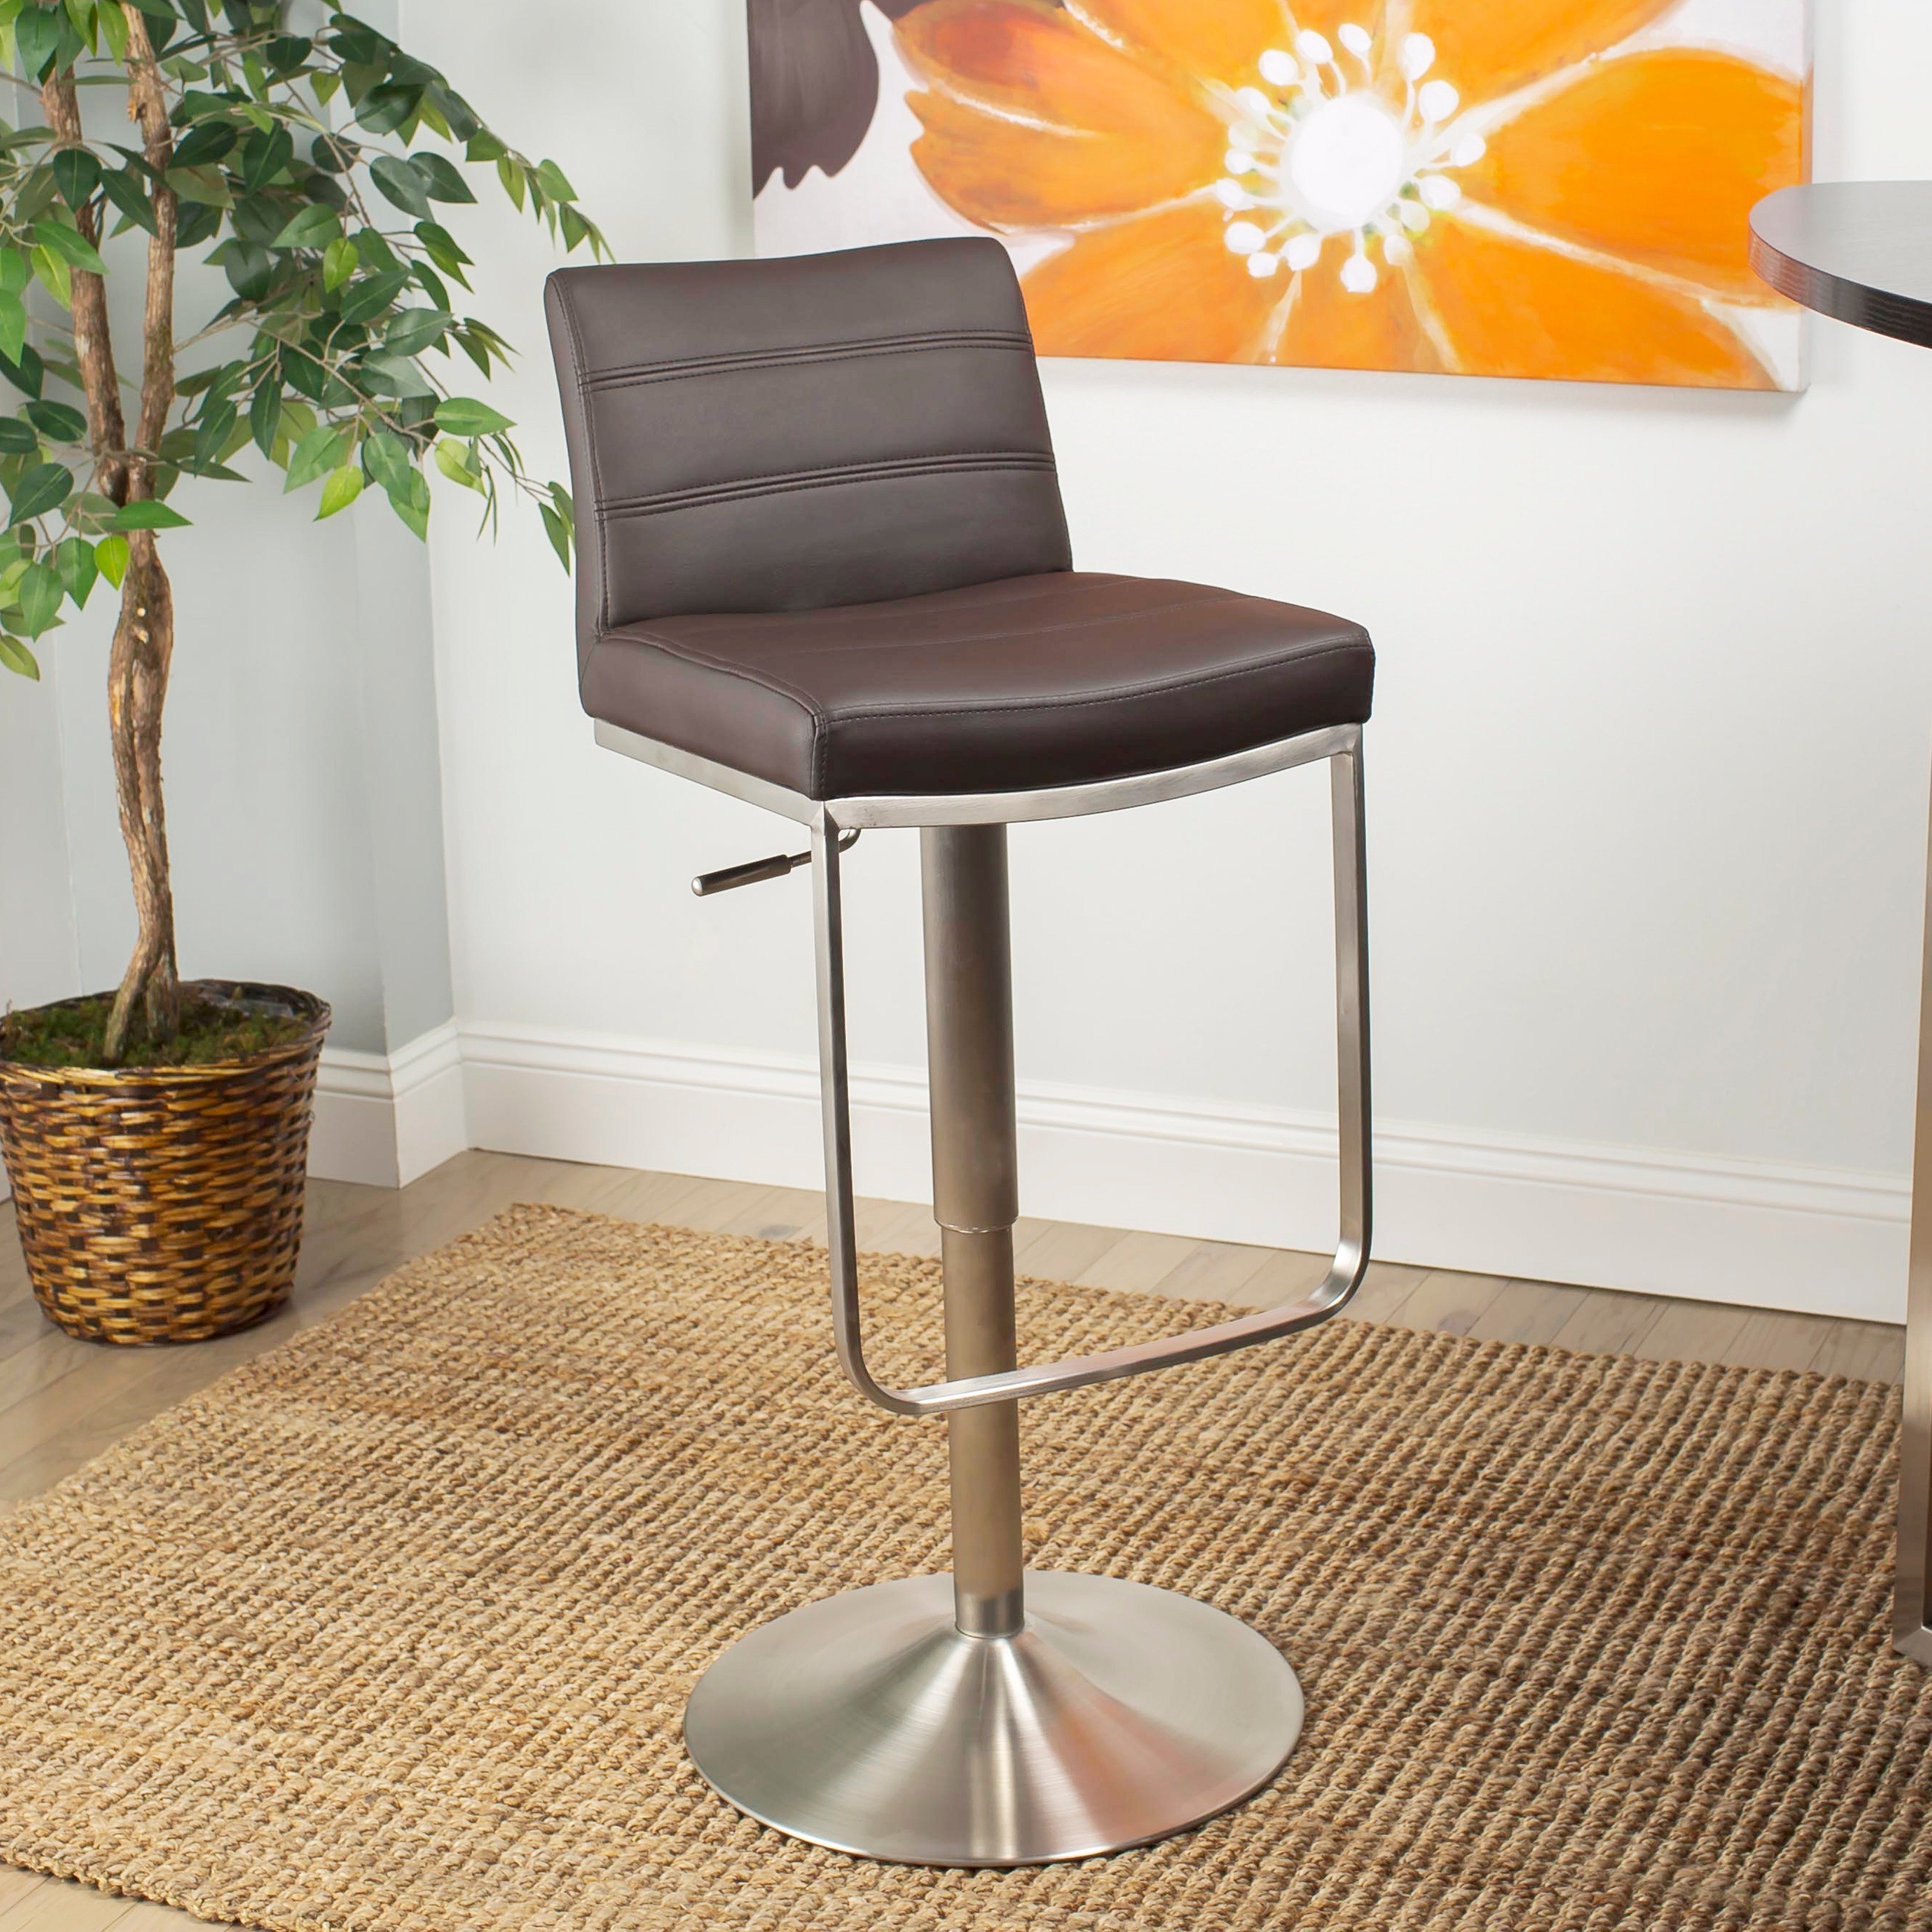 mix brushed stainless steel adjustable height swivel bar stool with round base neelan accent table free shipping today poolside furniture diy rustic coffee modern pedestal side